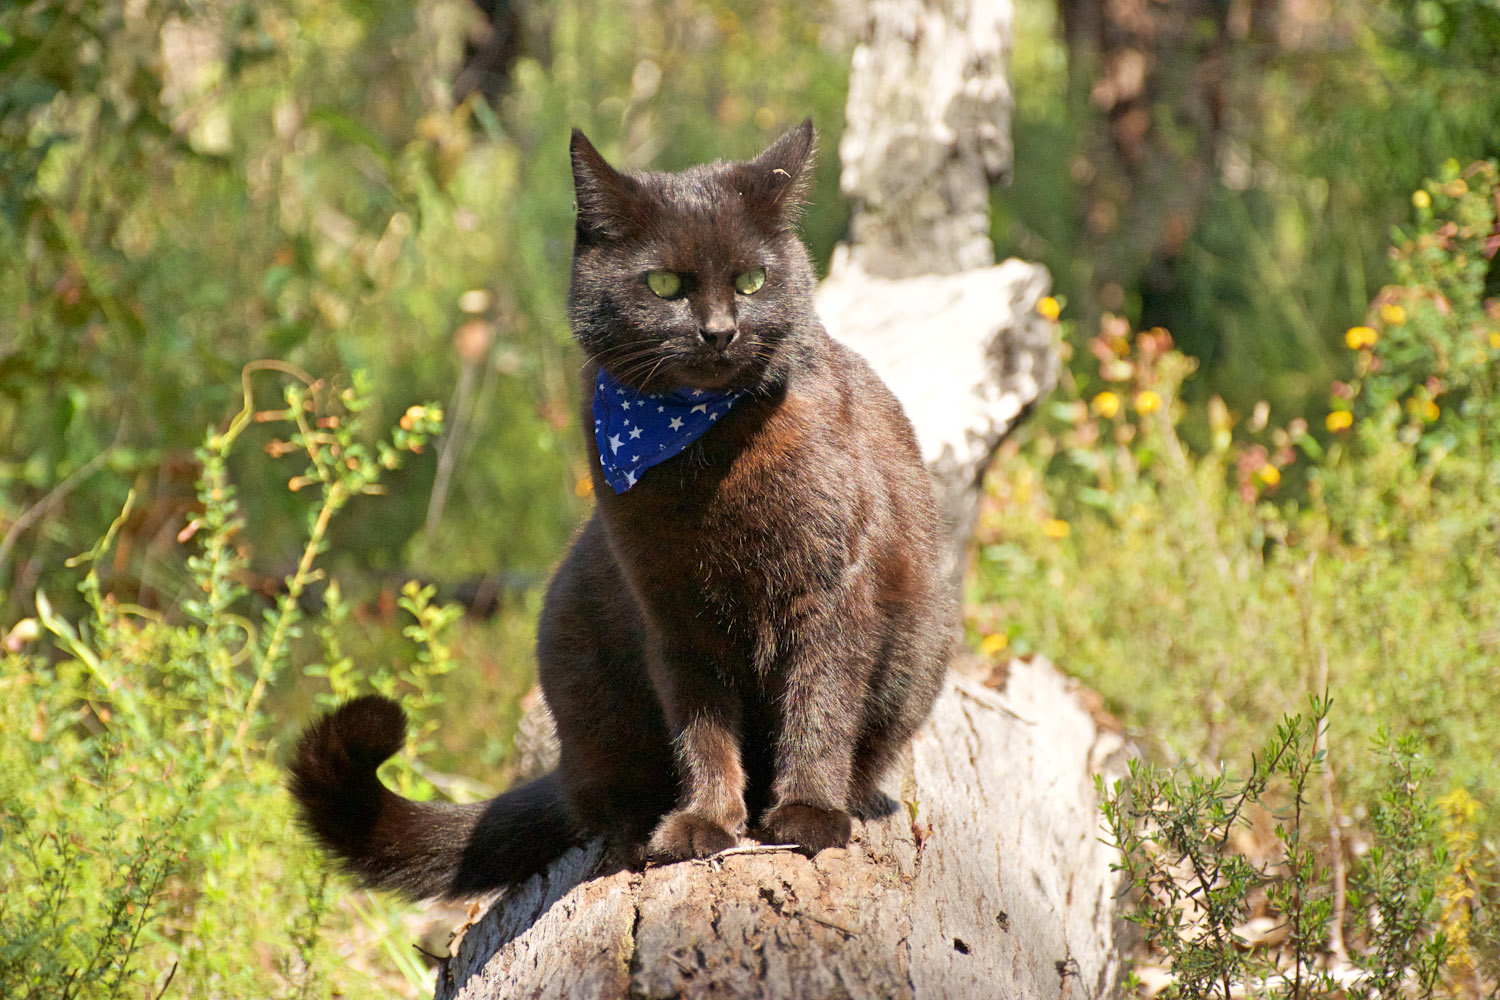 Willow van cat in bandana